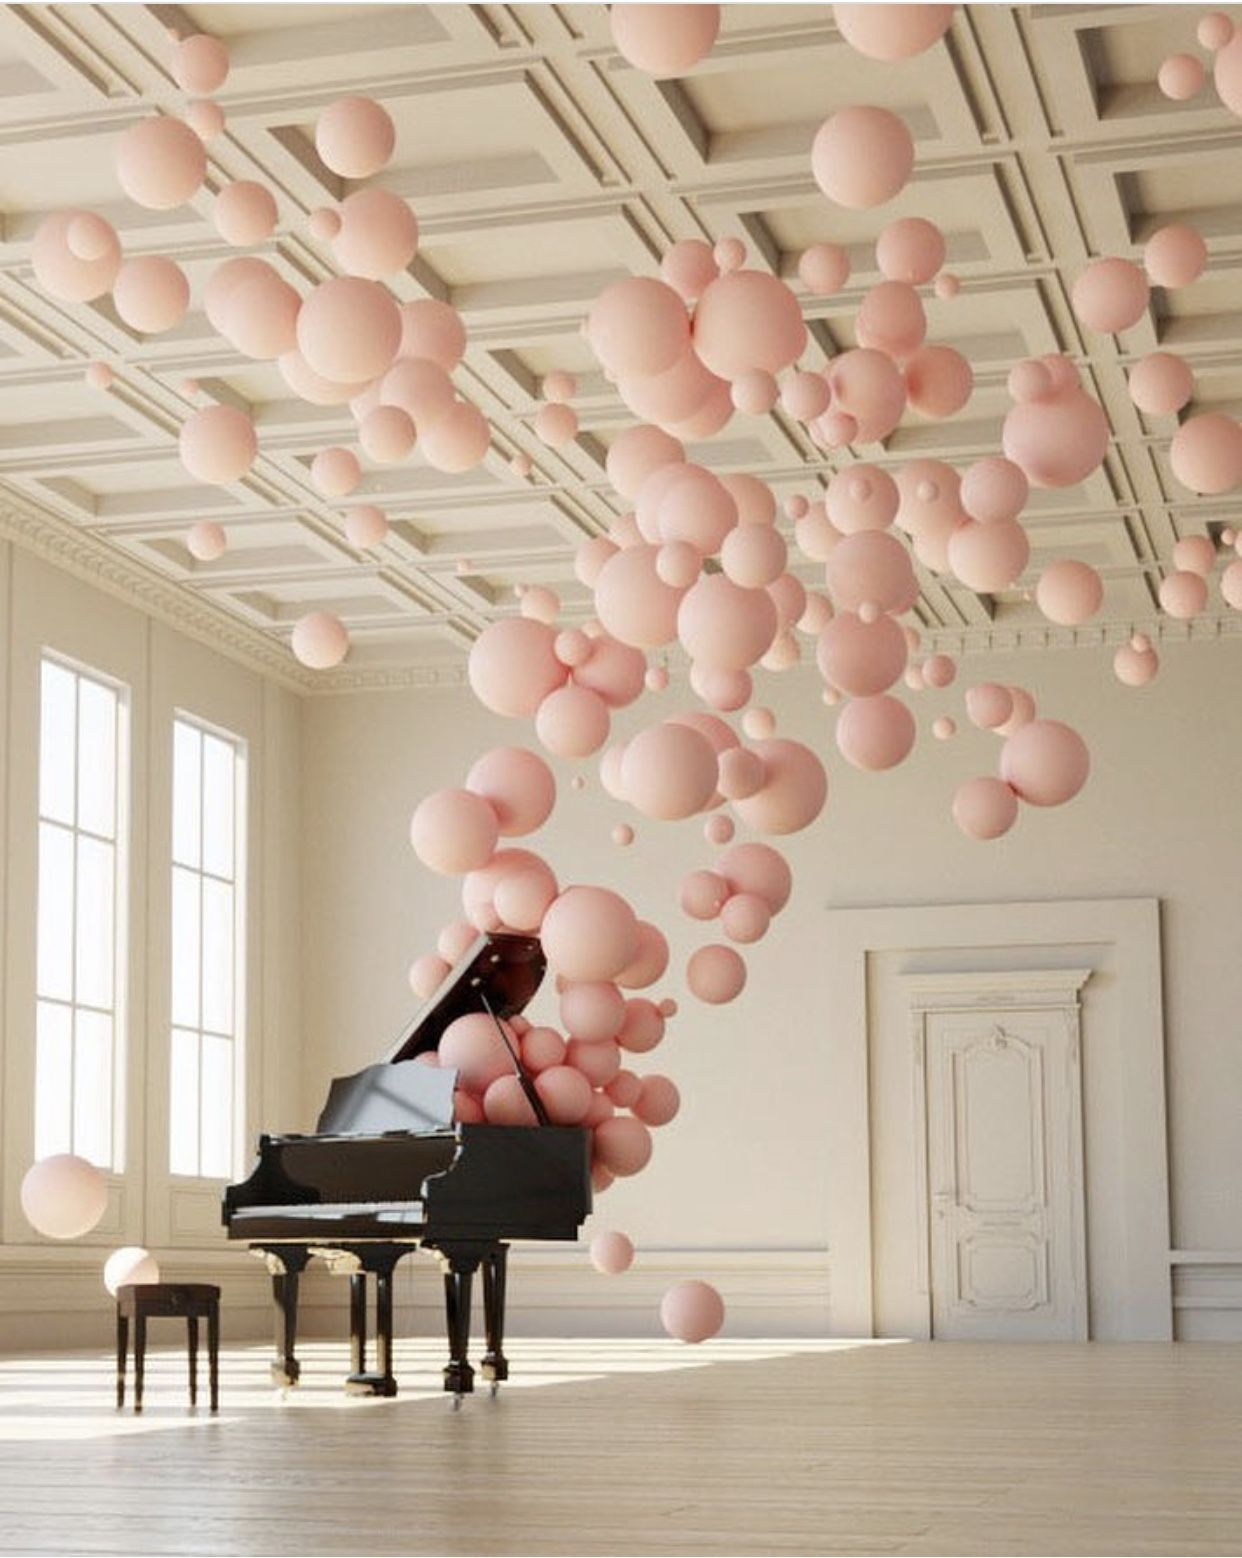 Balloons Pink With Images Balloons Event Decor Balloon Art